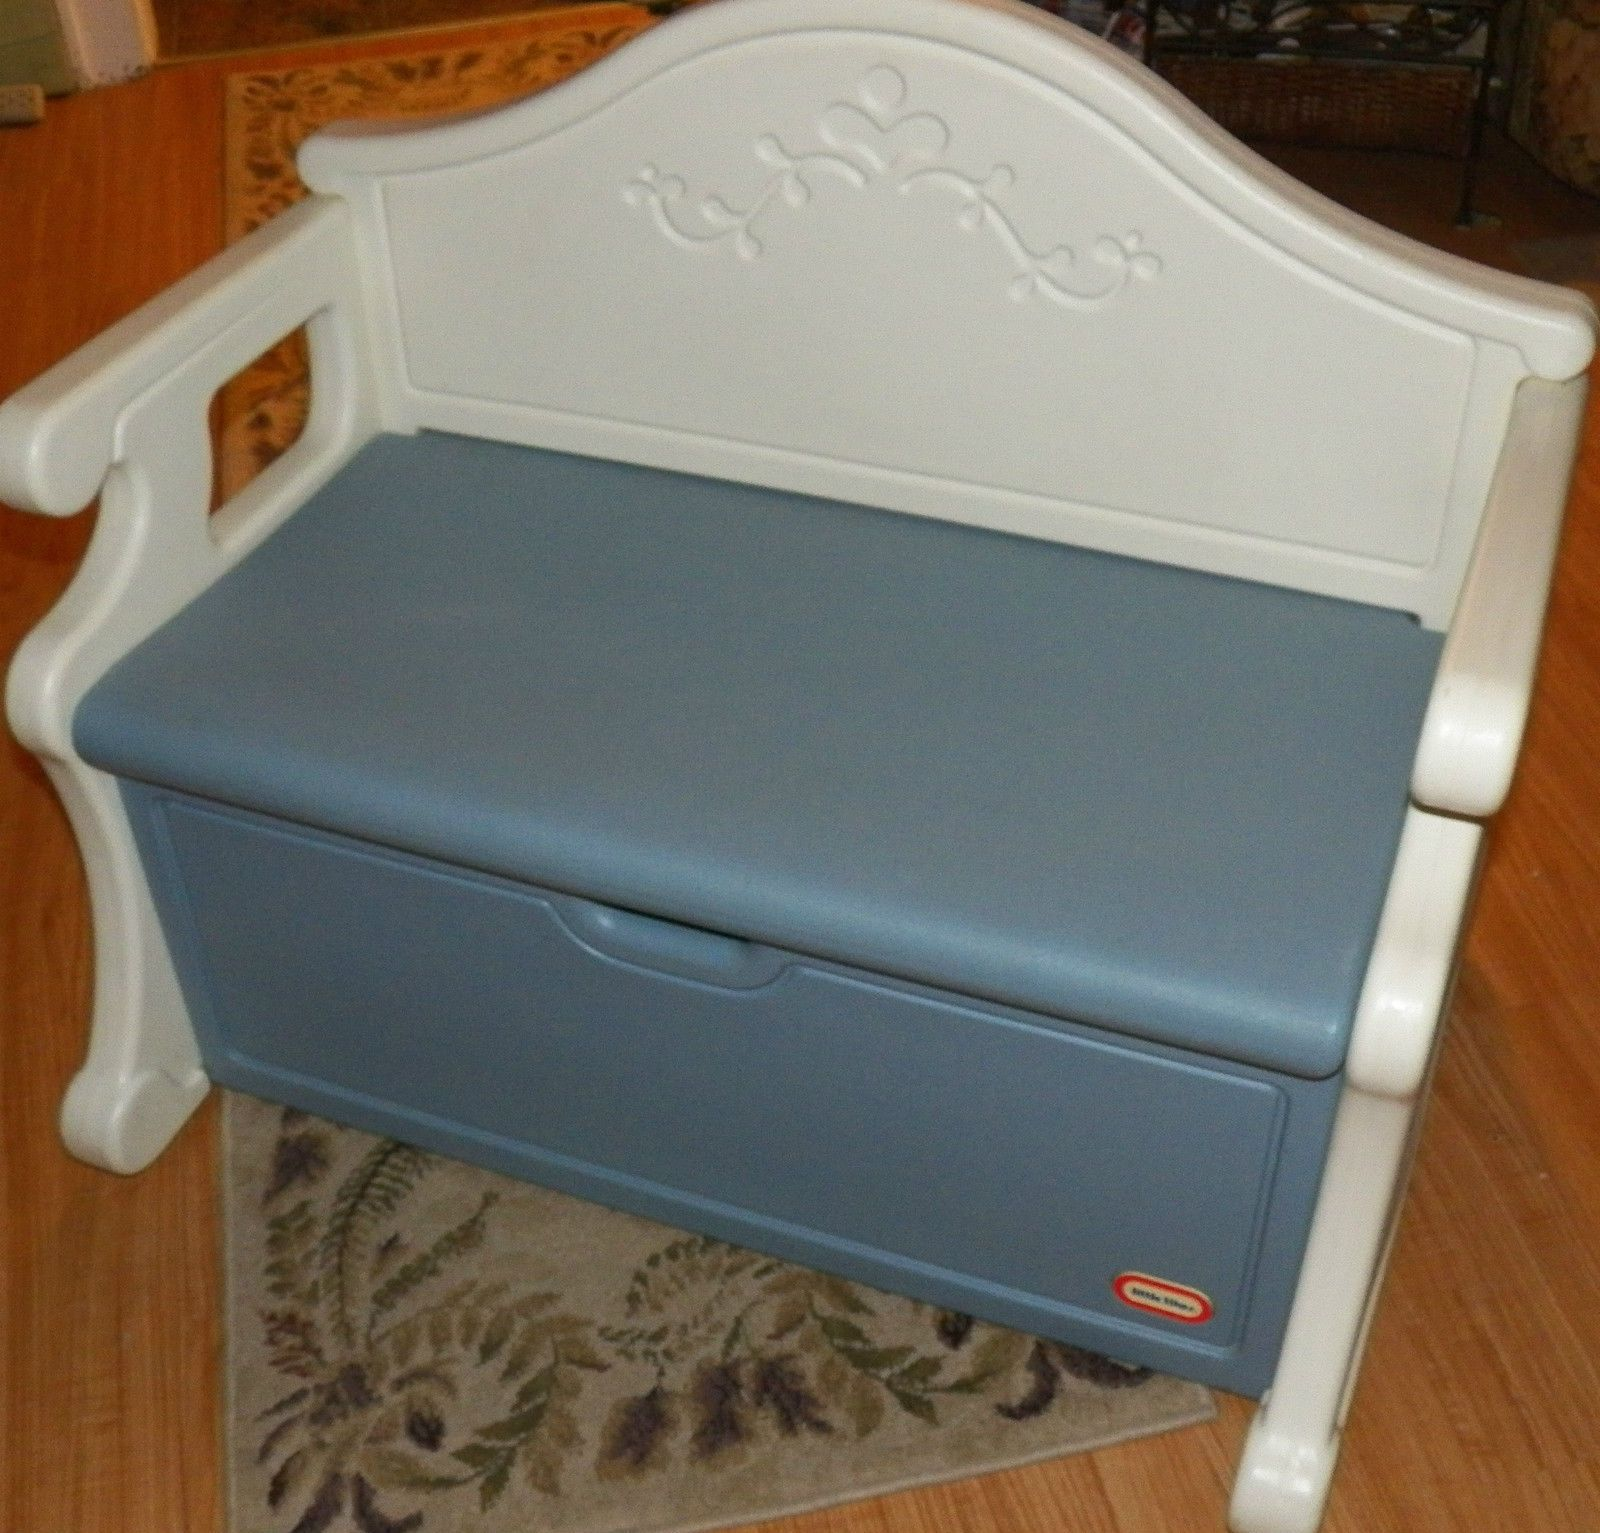 Little Tikes Bench Toy Box How Cute Will This Be When I Spray Paint It Furniture To Make